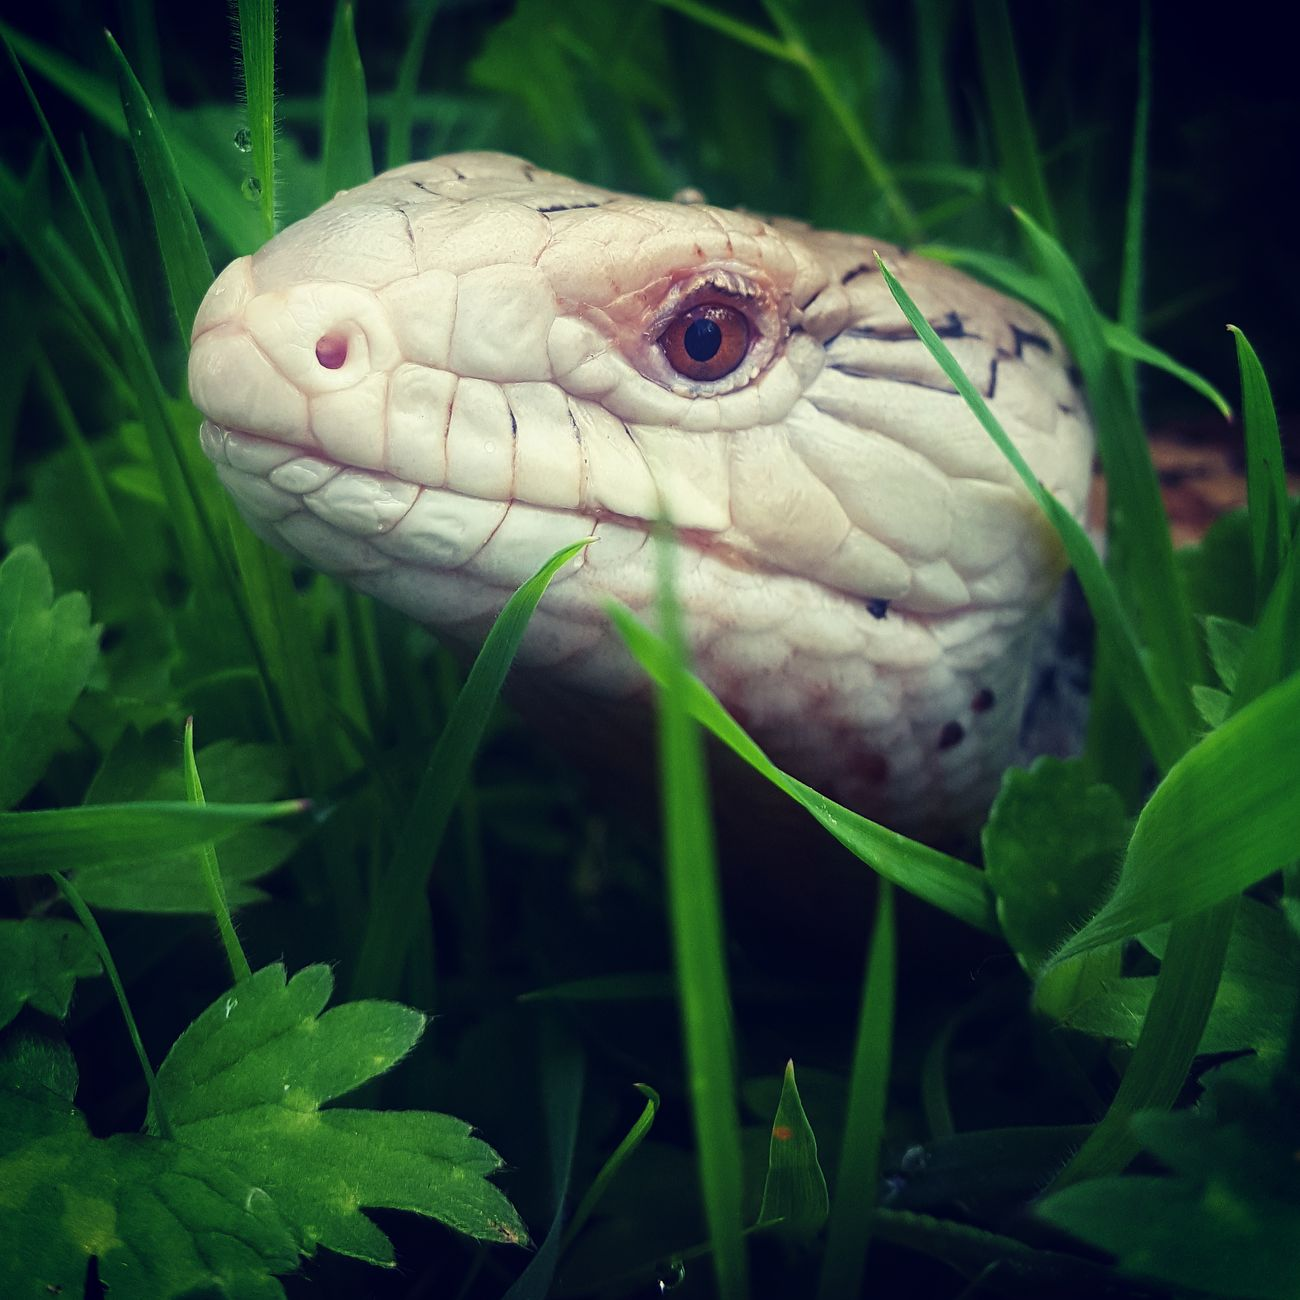 Pets Animal Close-up Reptile Lizard Bluetongueskink Exotic Pets Animal Photography Animal Lover